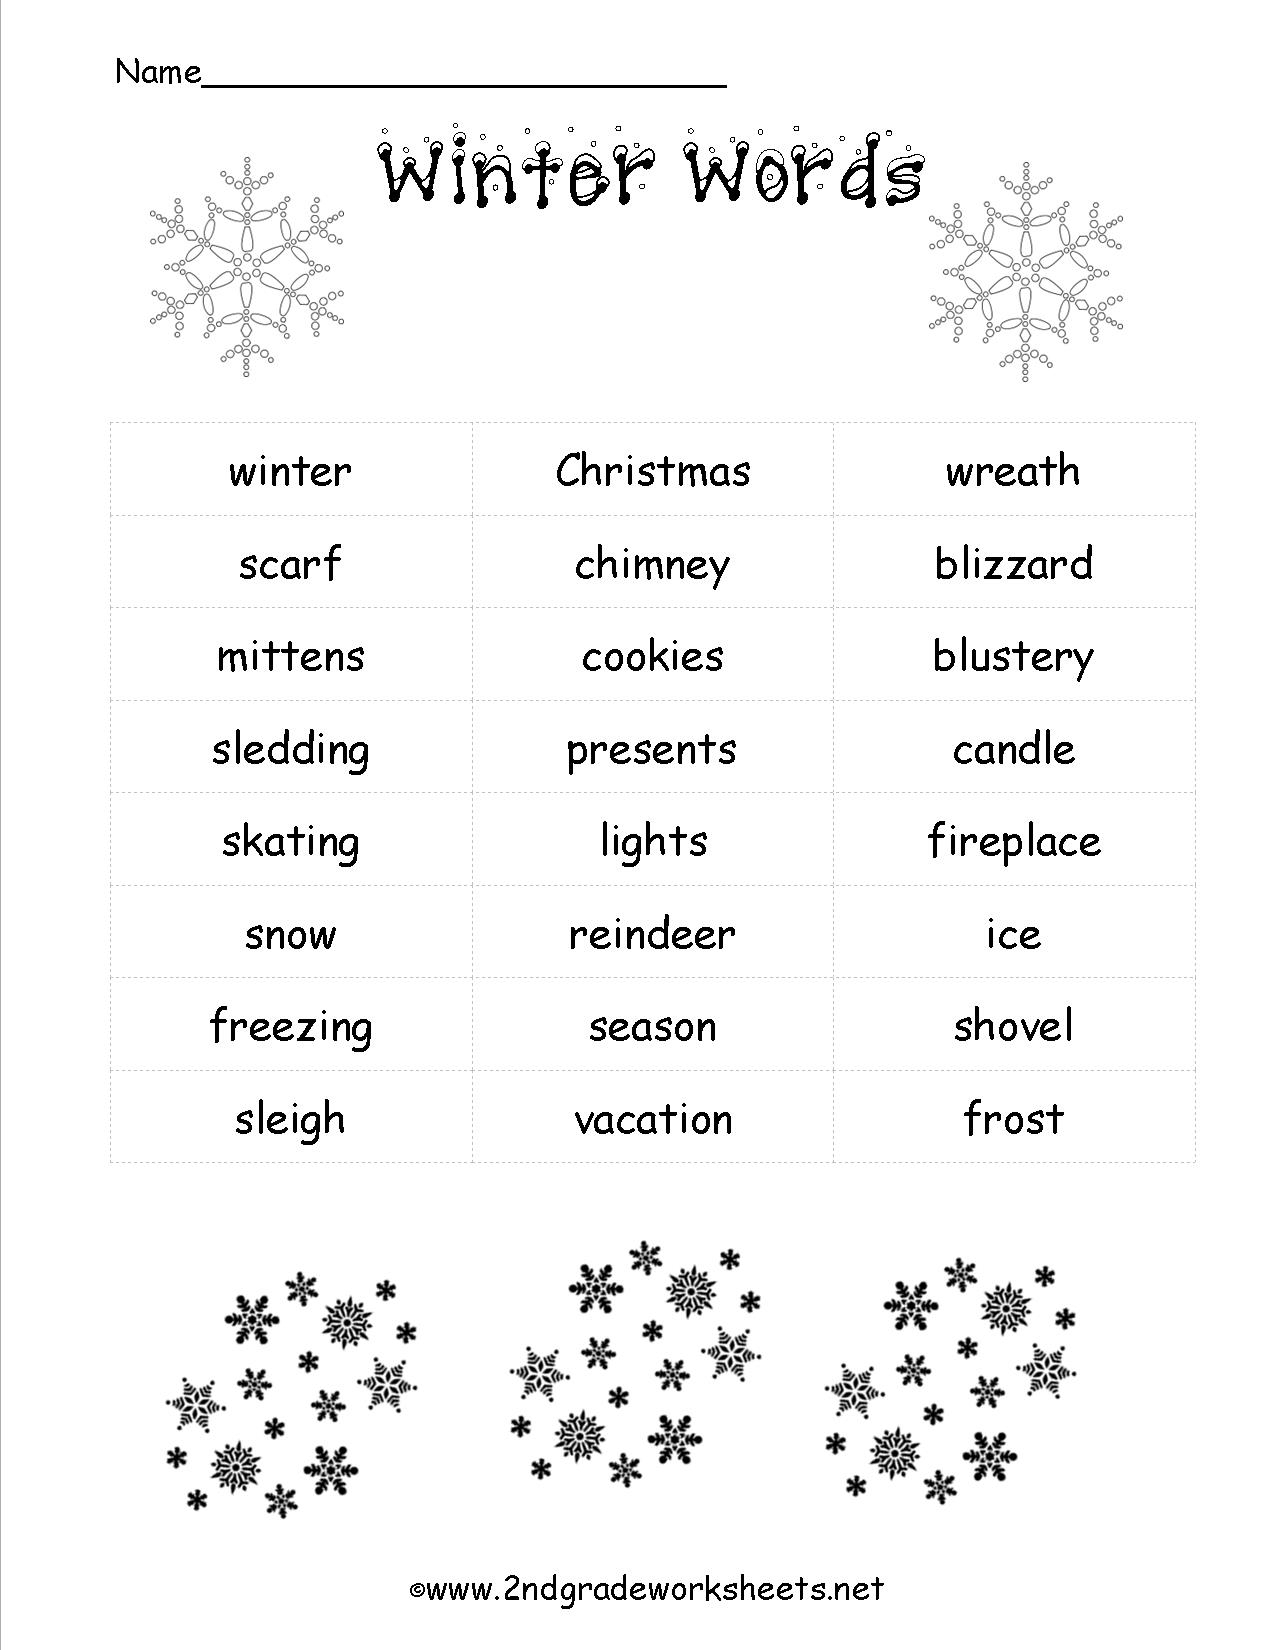 Christmas Worksheets And Printouts Free Winterwordlist